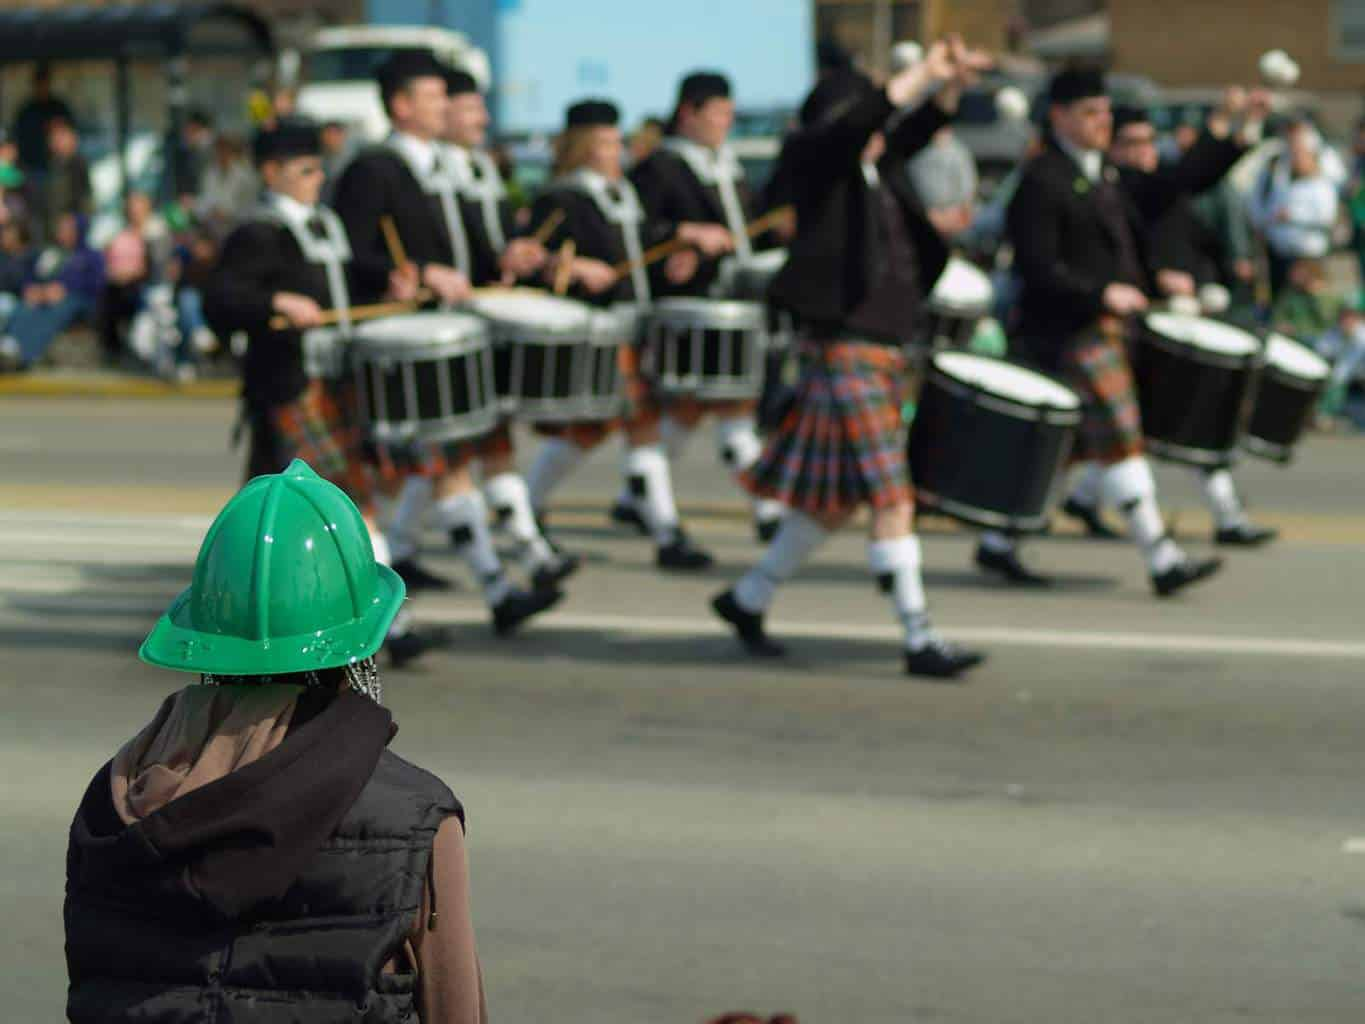 patrick's day parade, st. patrick's day